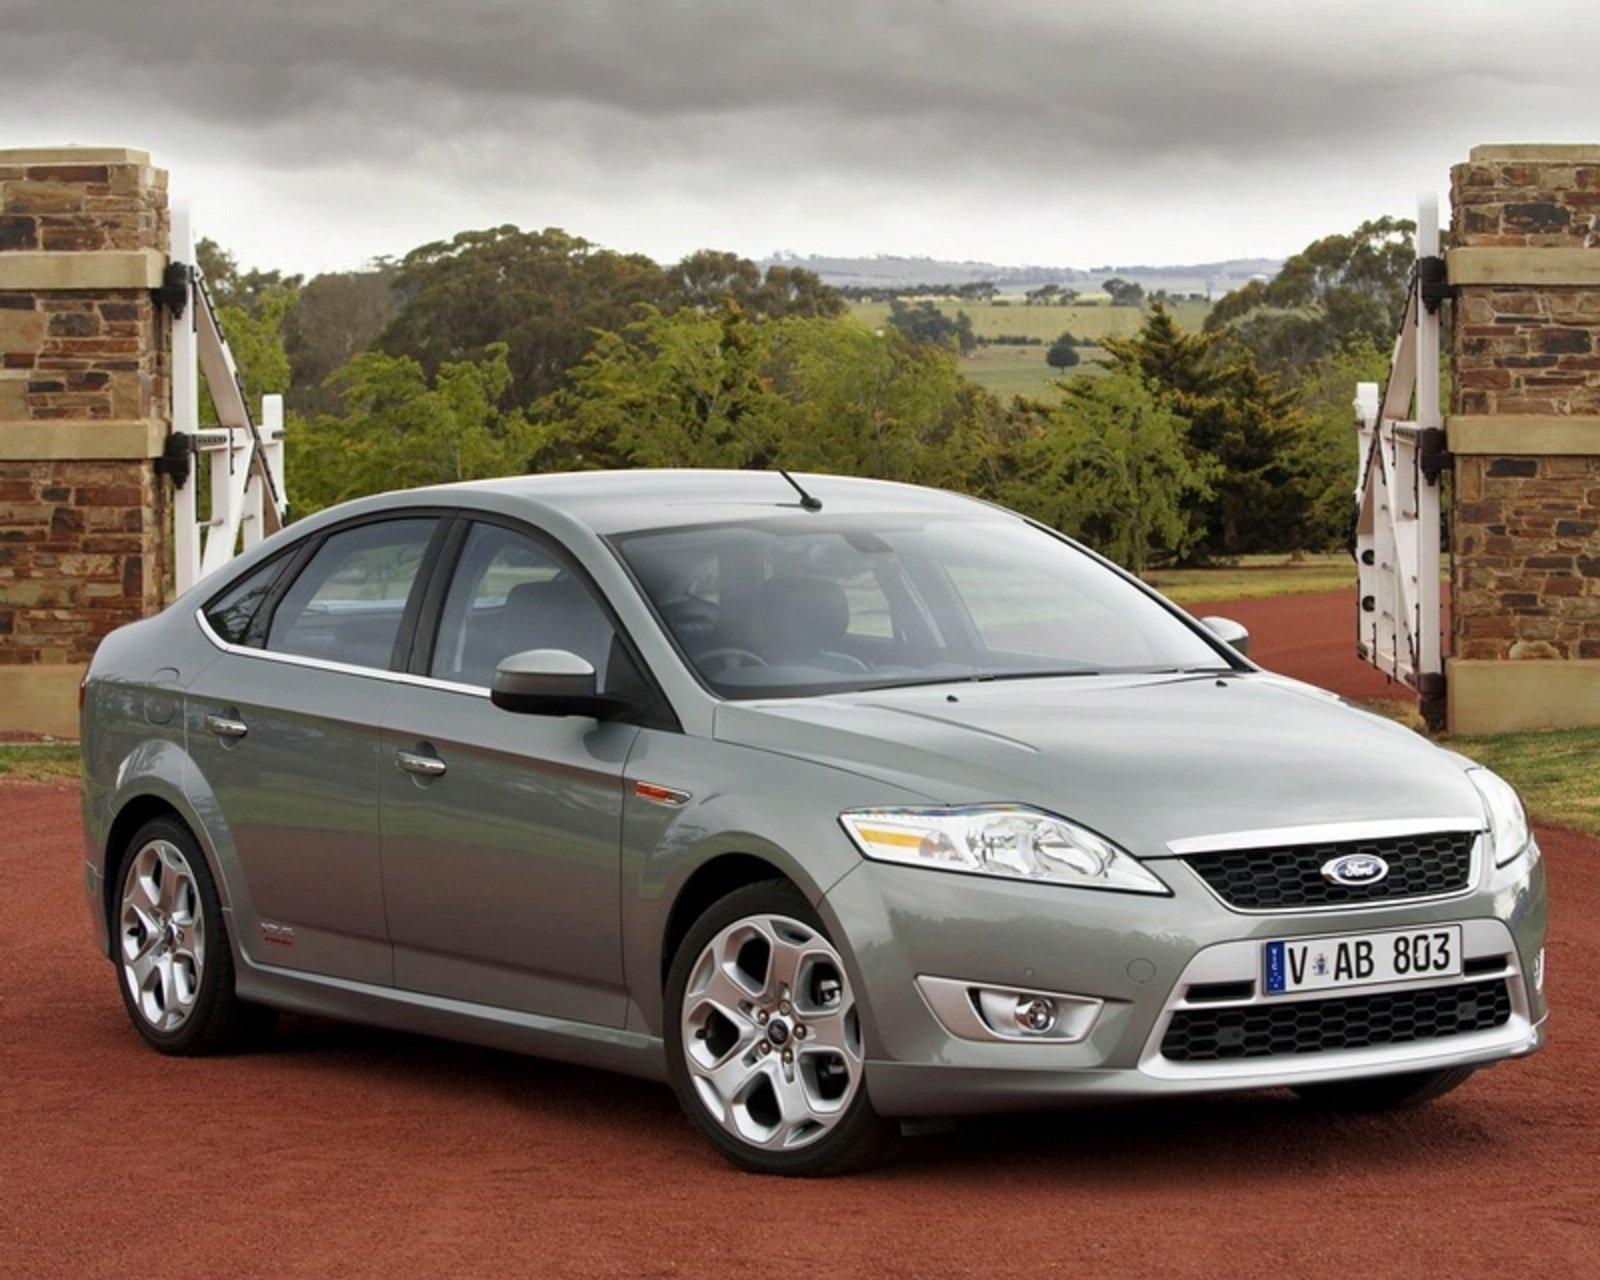 2008 ford mondeo xr5 turbo review top speed. Black Bedroom Furniture Sets. Home Design Ideas